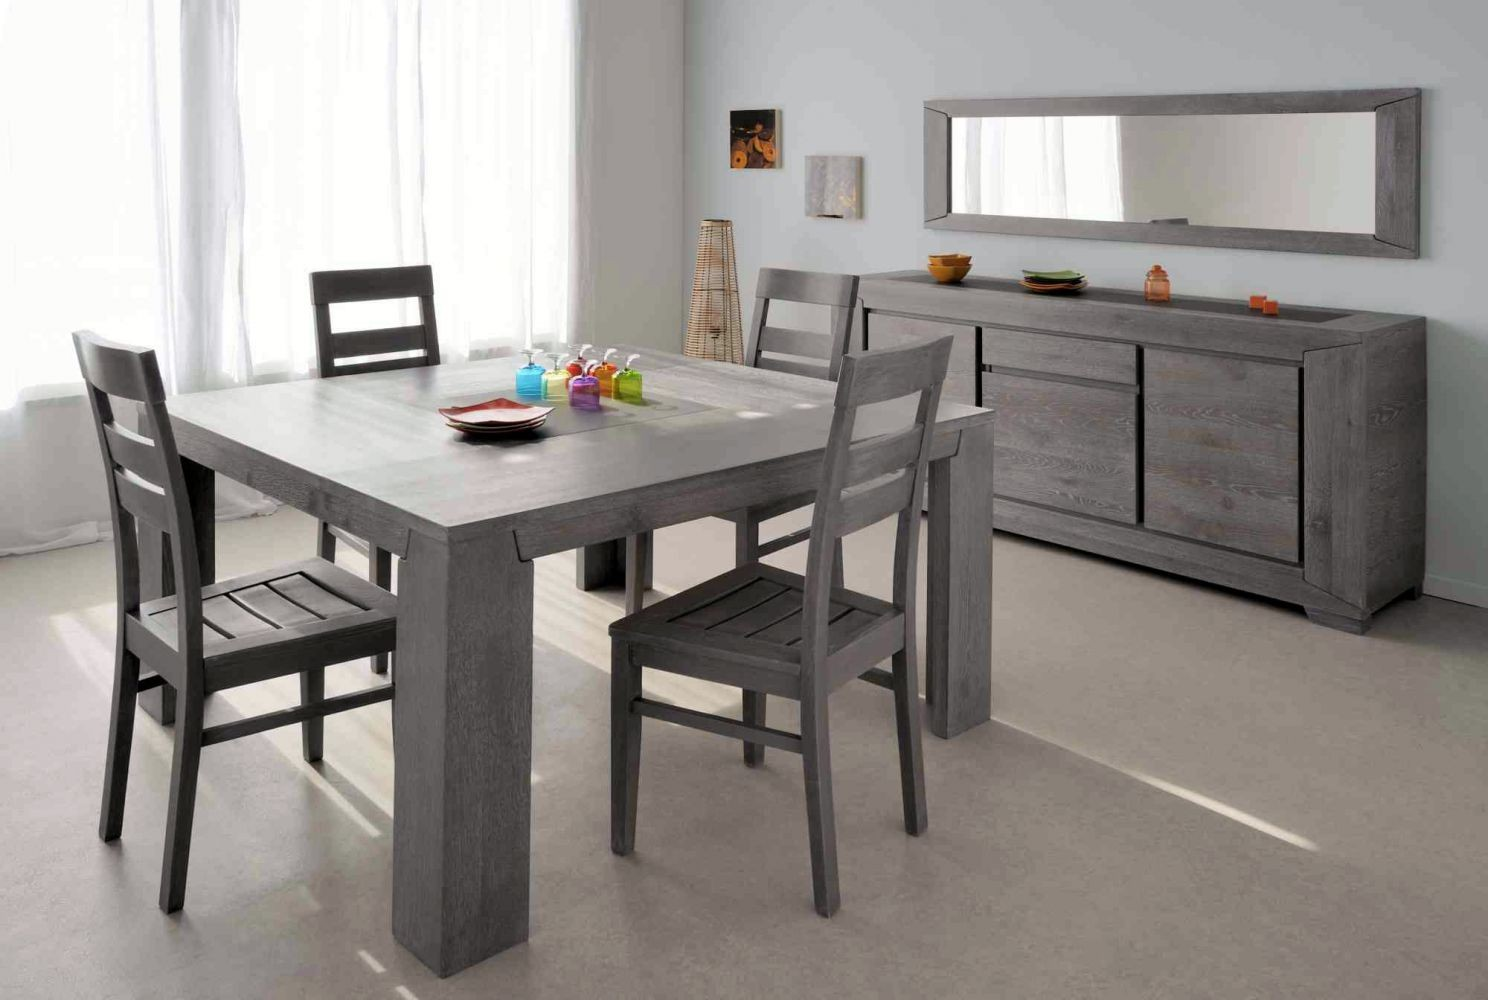 Table cuisine extensible conforama cuisine id es de for Conforama table de cuisine